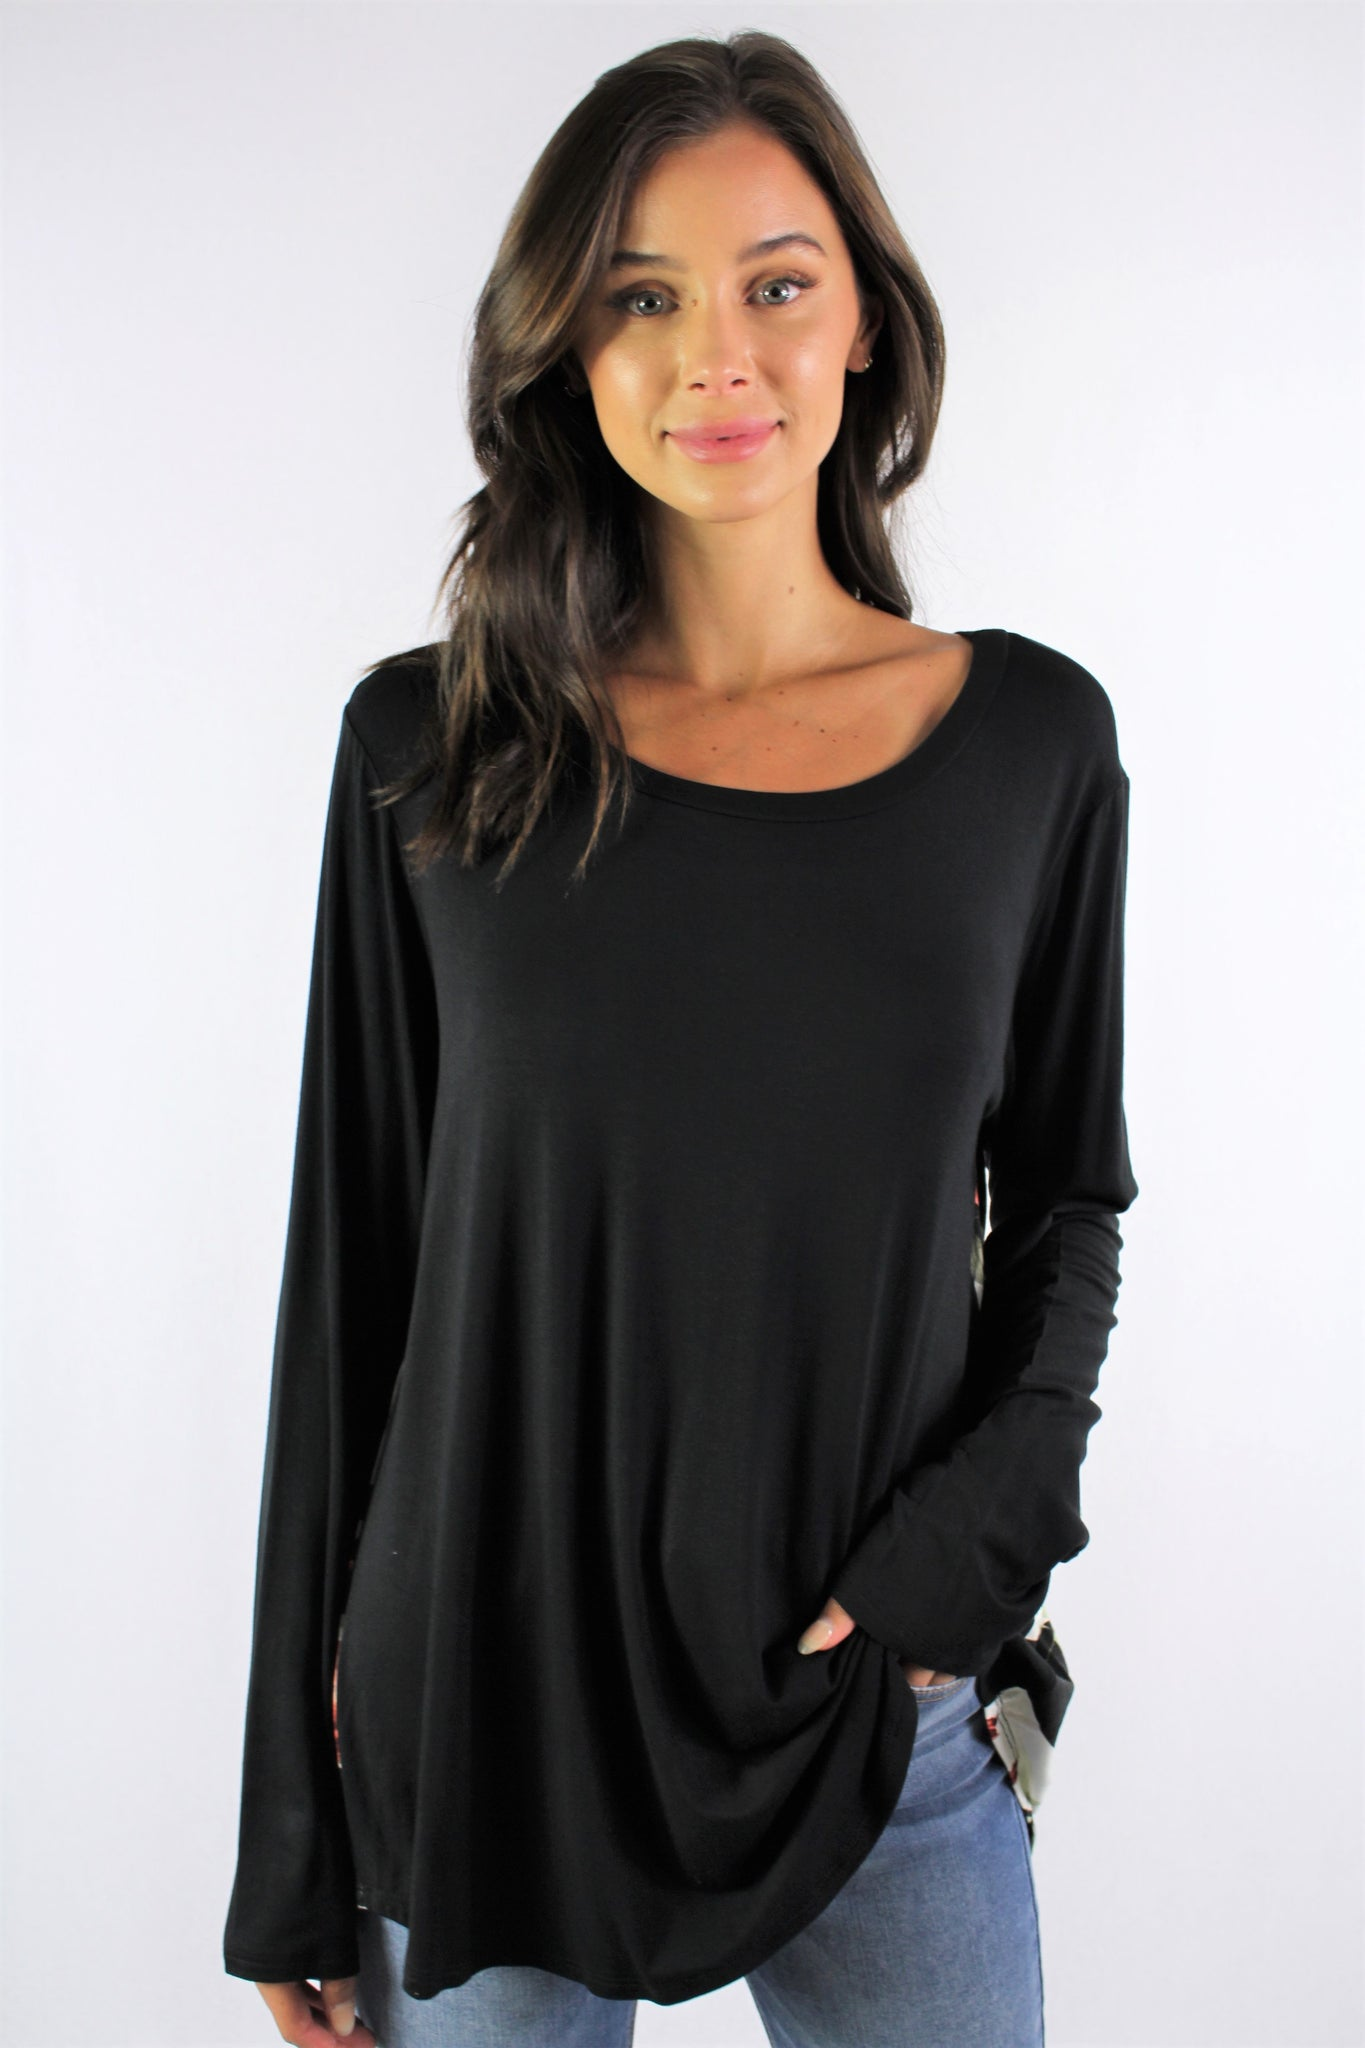 Women's Long Sleeve Round Neck Top with Floral Detail